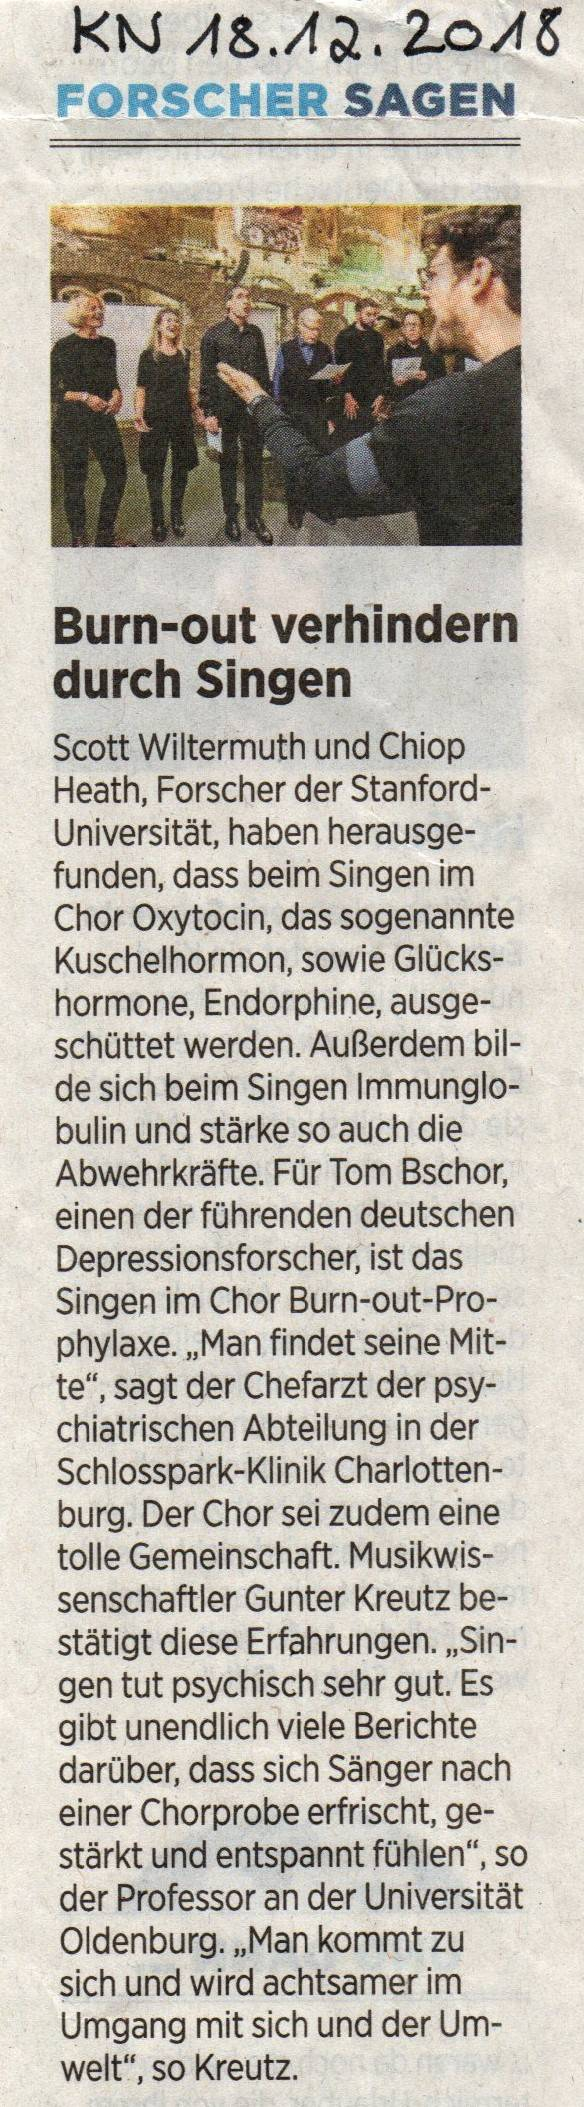 KN-Artikel Burn-out verhindern durch Singen